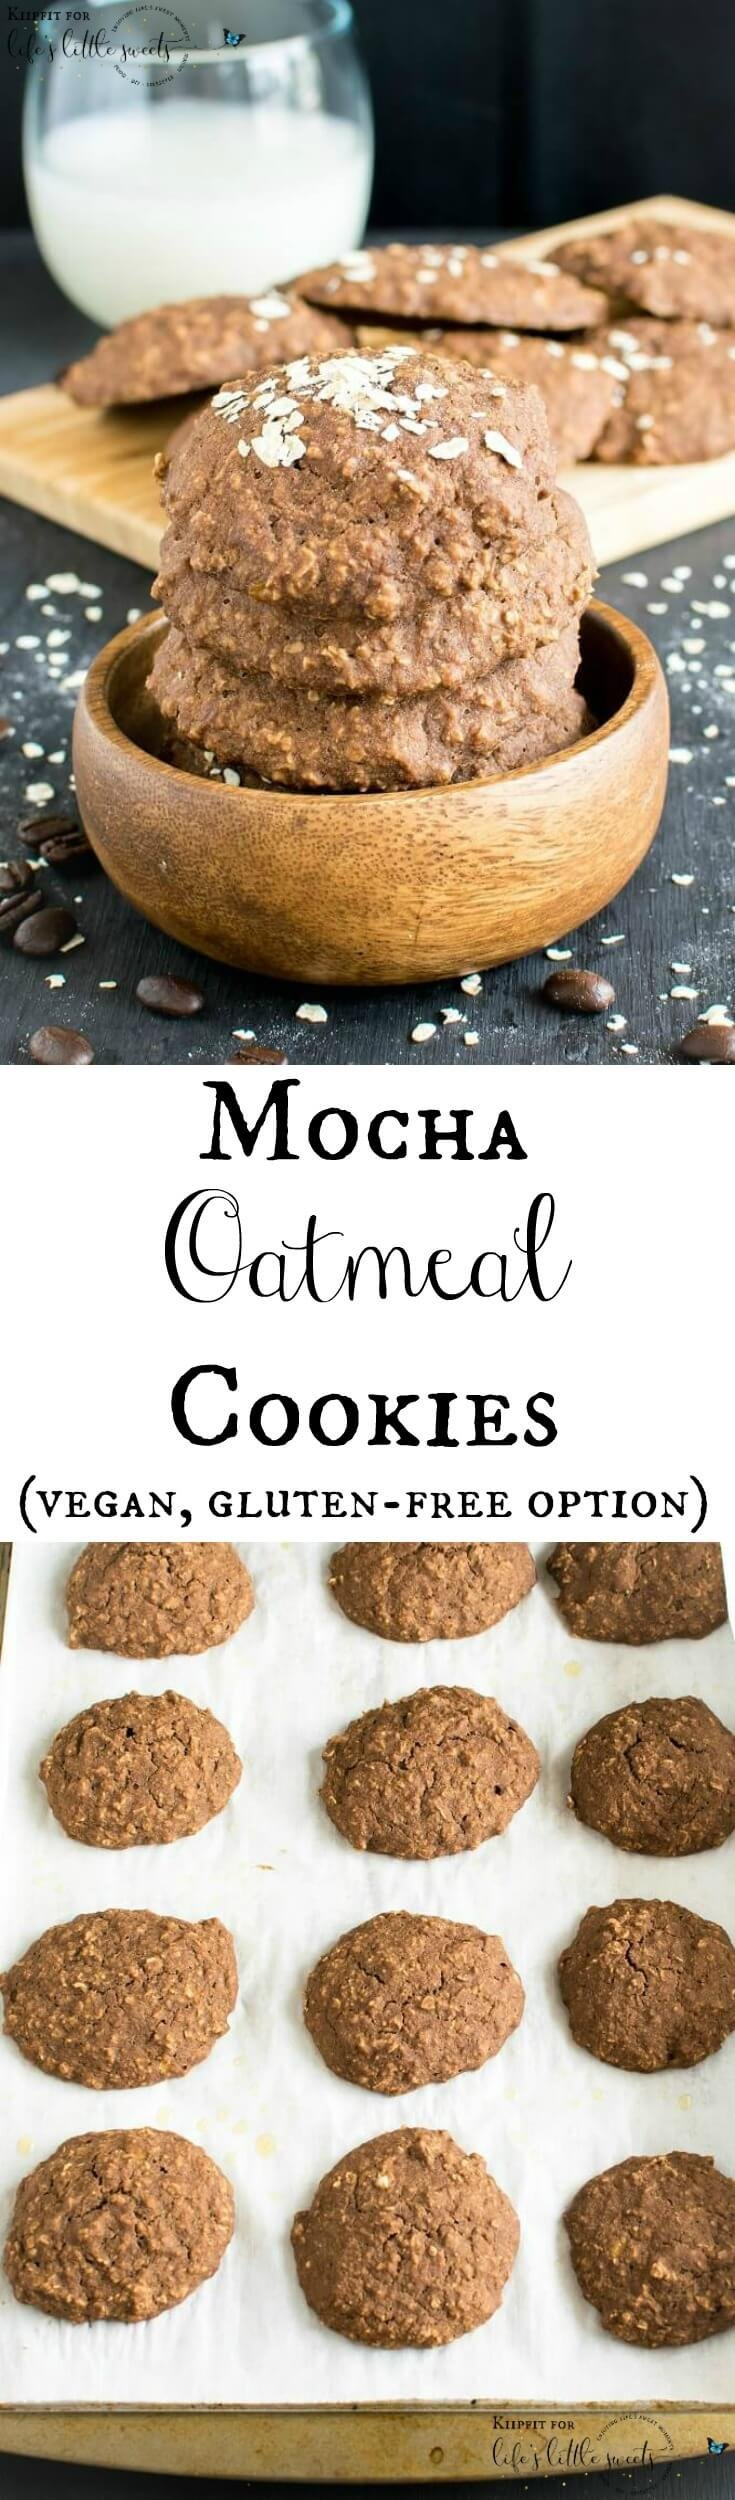 These Mocha Oatmeal Cookies are soft and chewy with a distinct flavor of fresh brewed coffee. These vegan cookies are easy to bake and heavenly for taste buds especially if you are coffee lover.